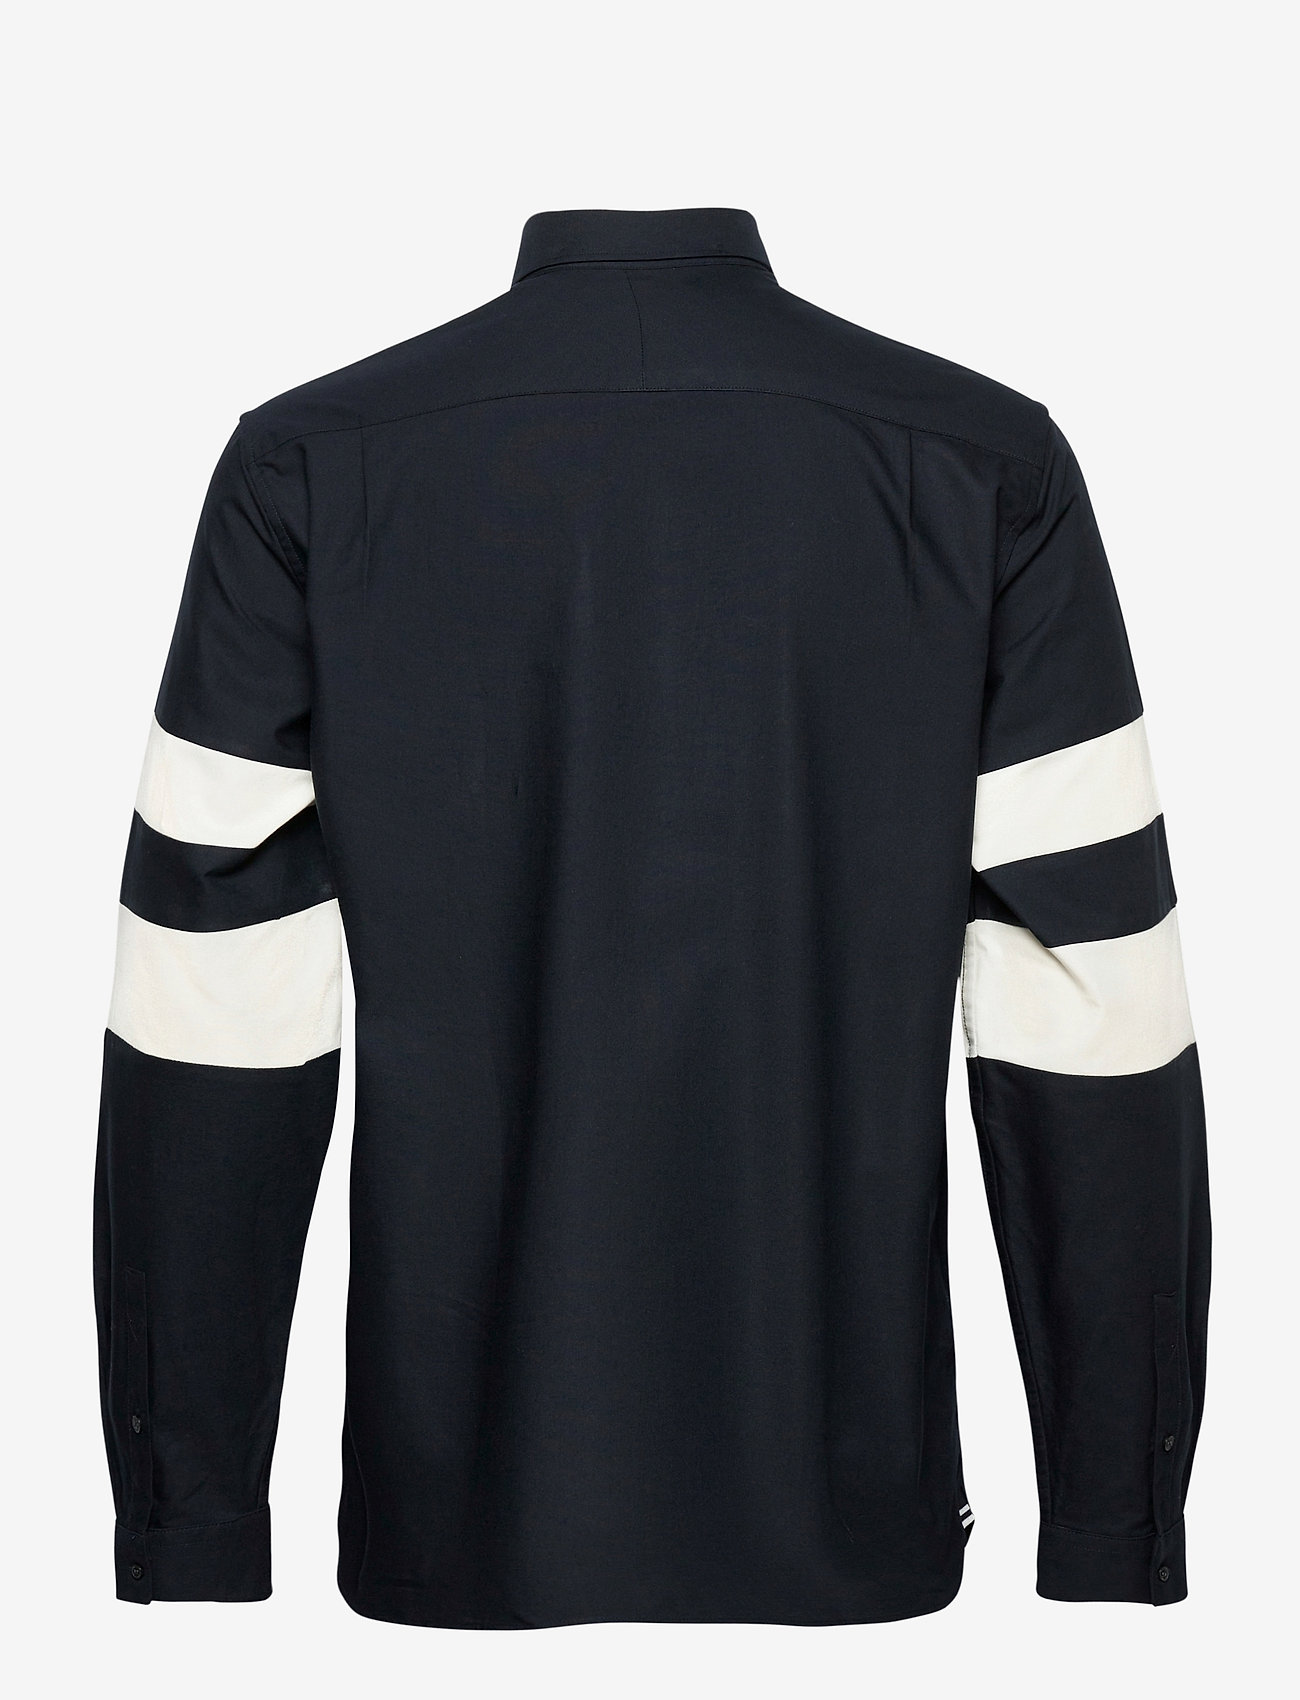 Fred Perry TWIN TIPPED L/S SHIRT - Skjorter NAVY - Menn Klær